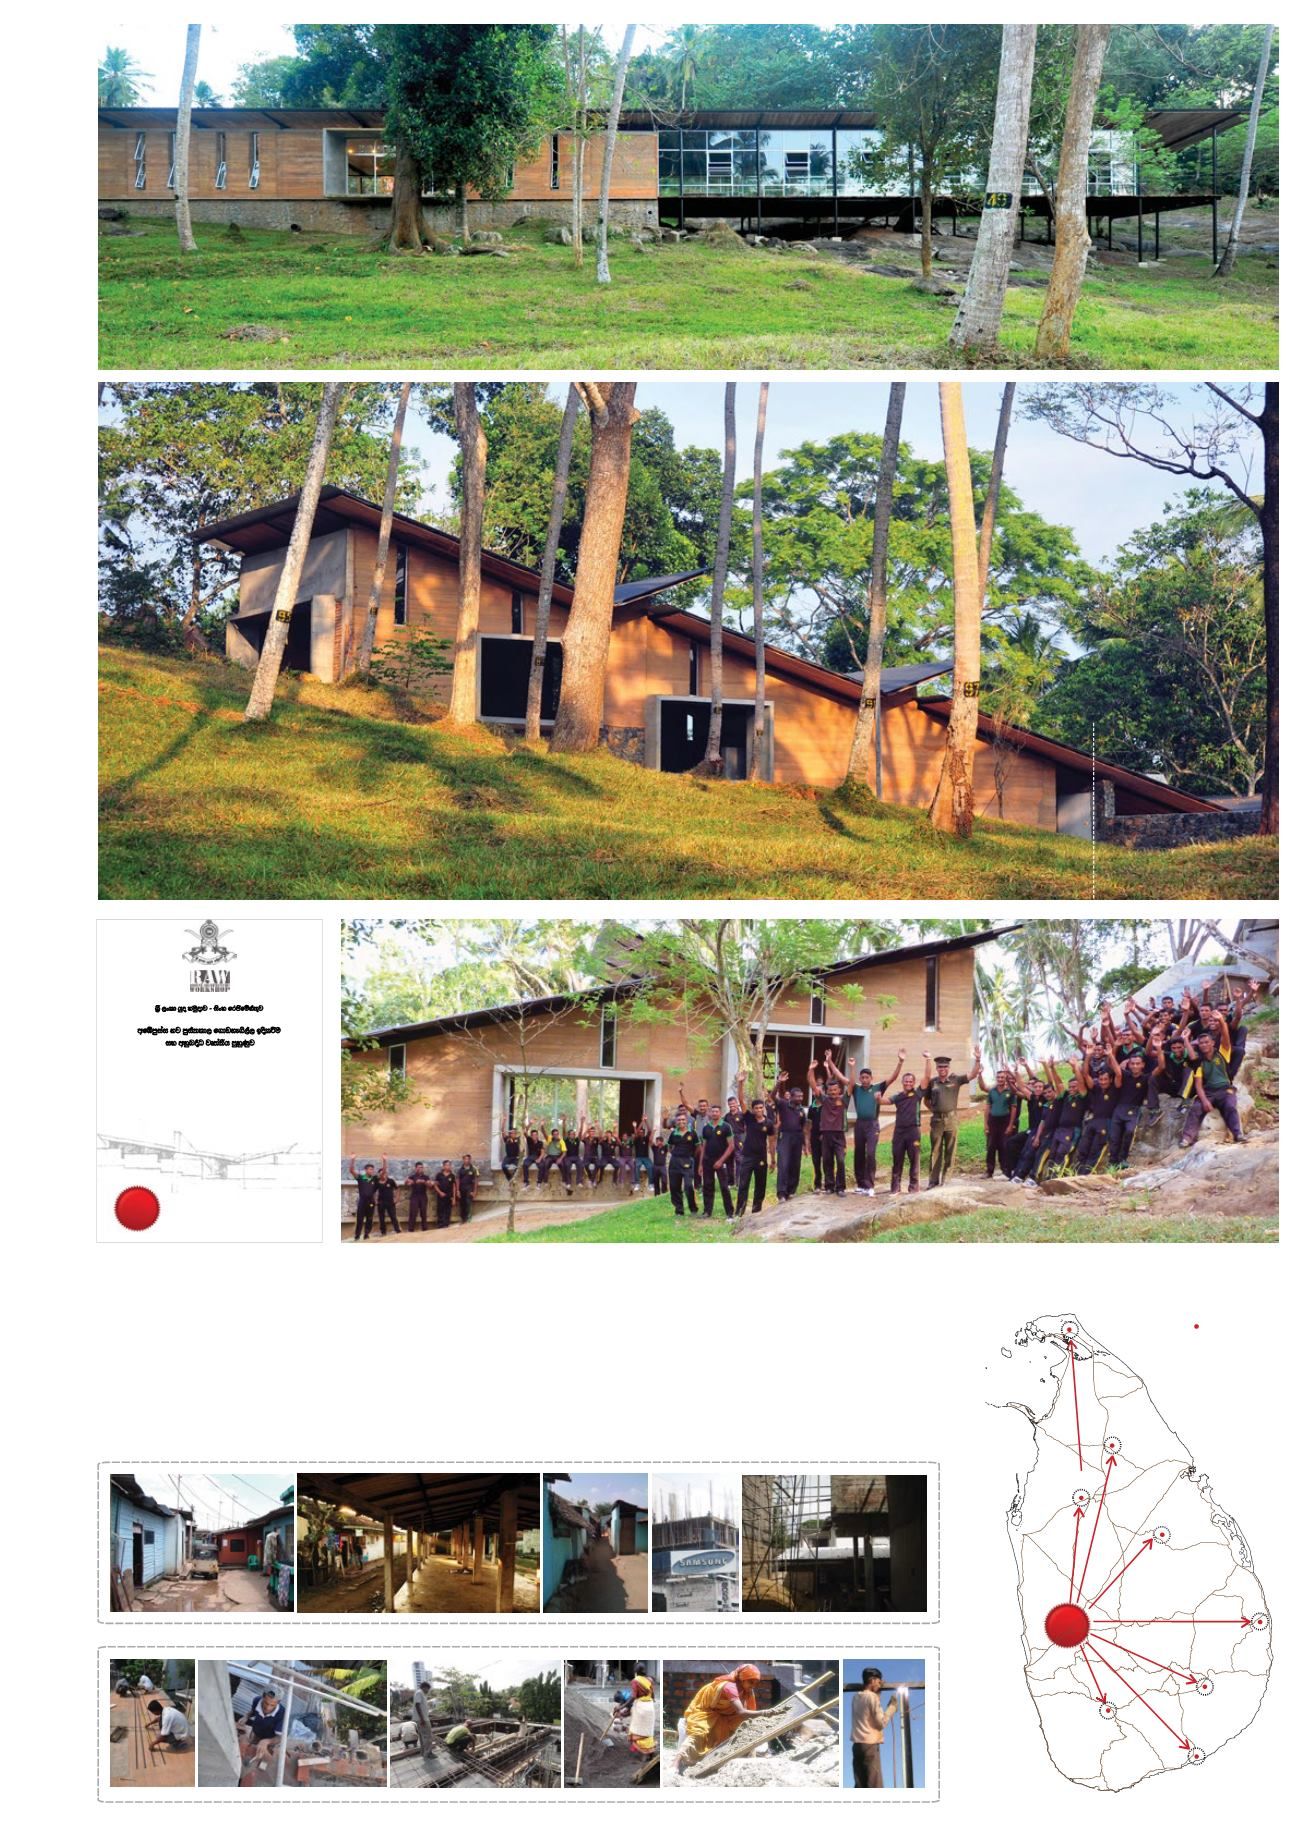 Posts for march page 7 - Global Entry 2015 Post War Collective Ambepussa Sri Lanka Page 7